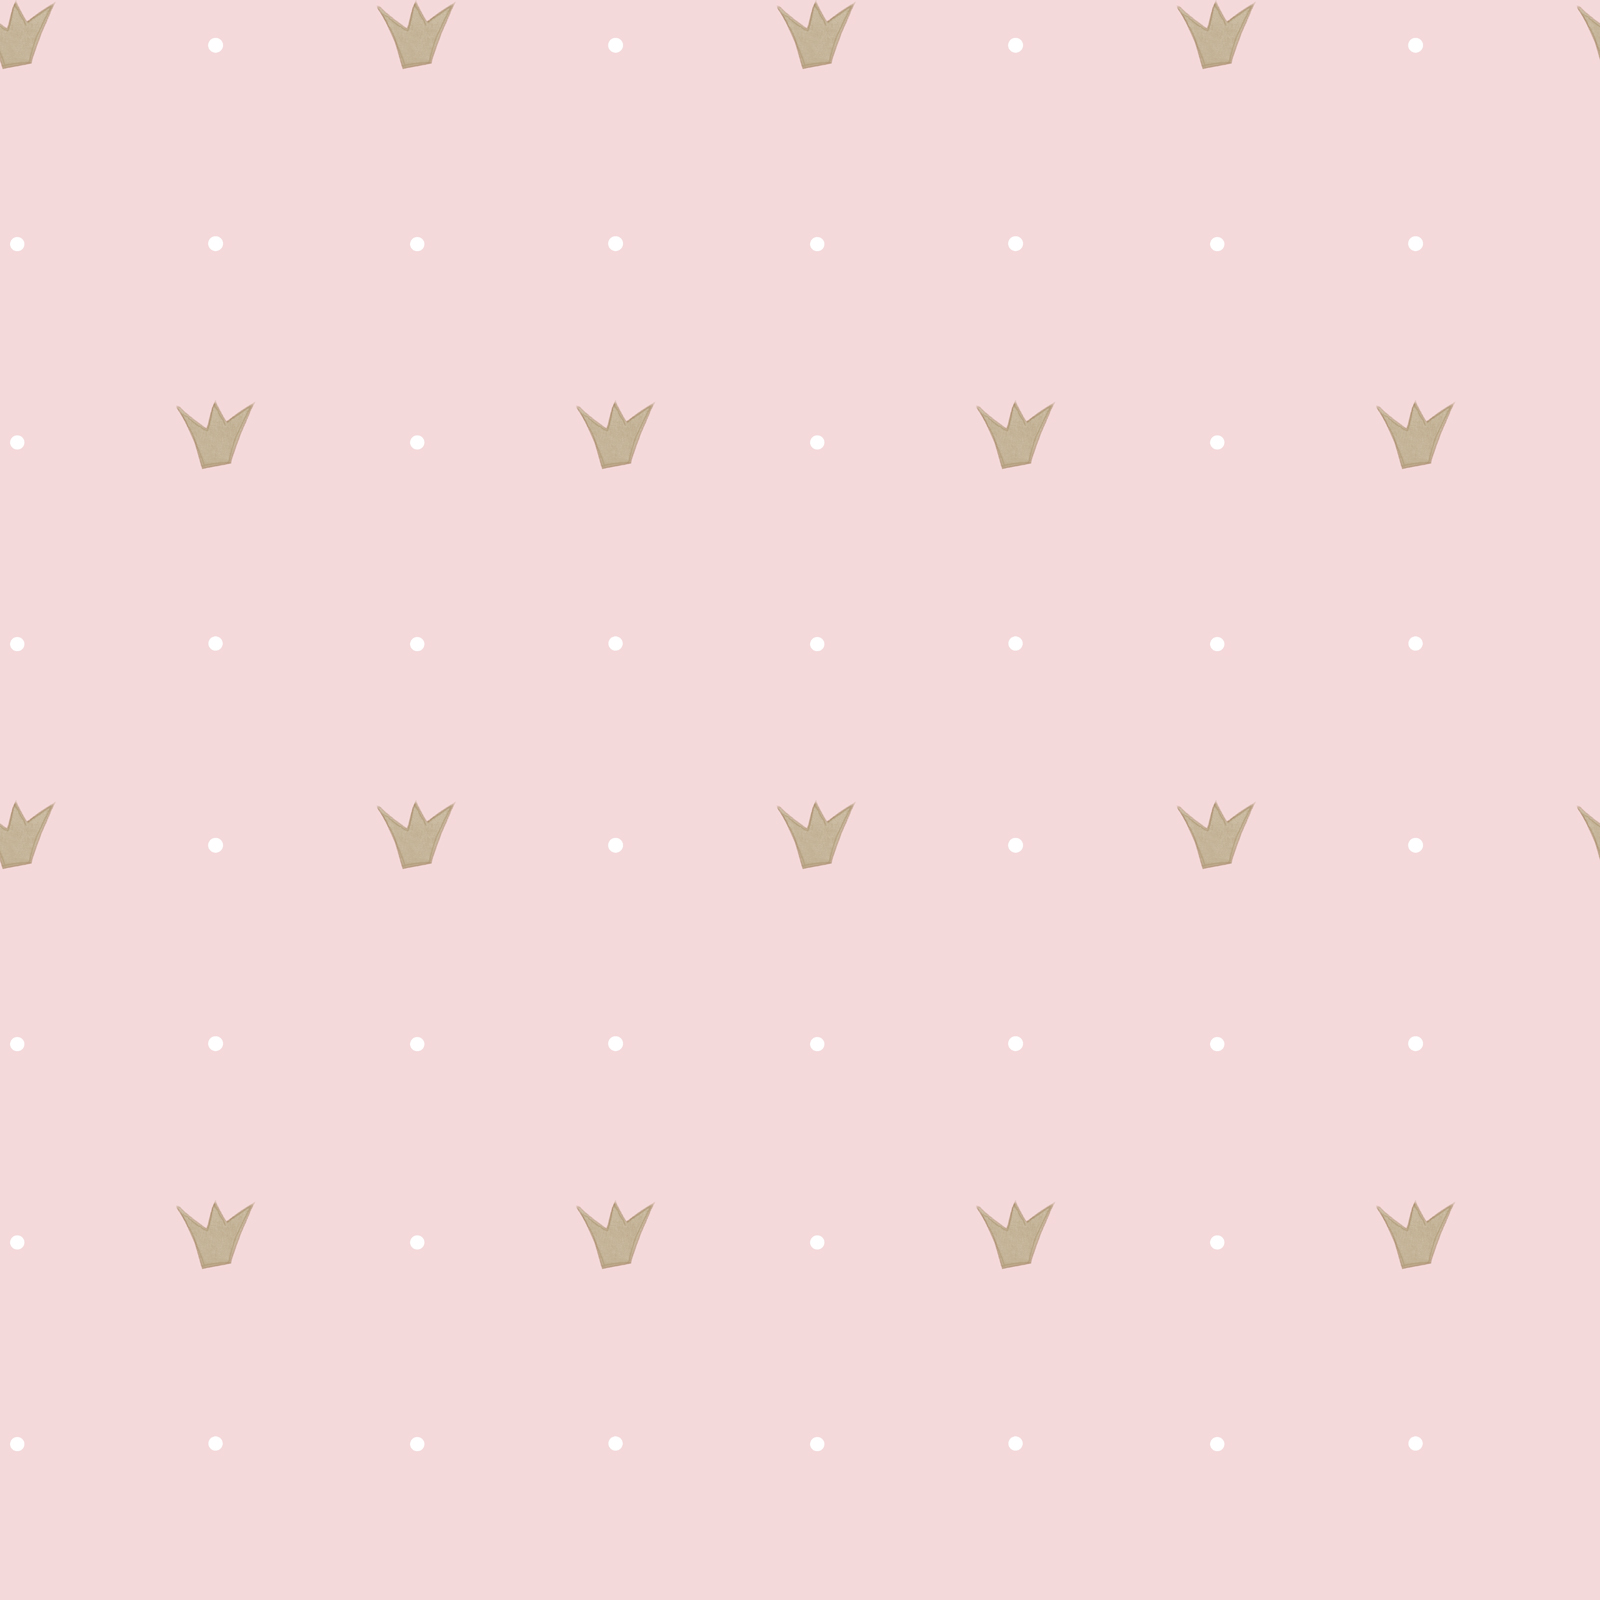 Kids Wallpaper Crown Dots Pink Gold Babylandia 005410